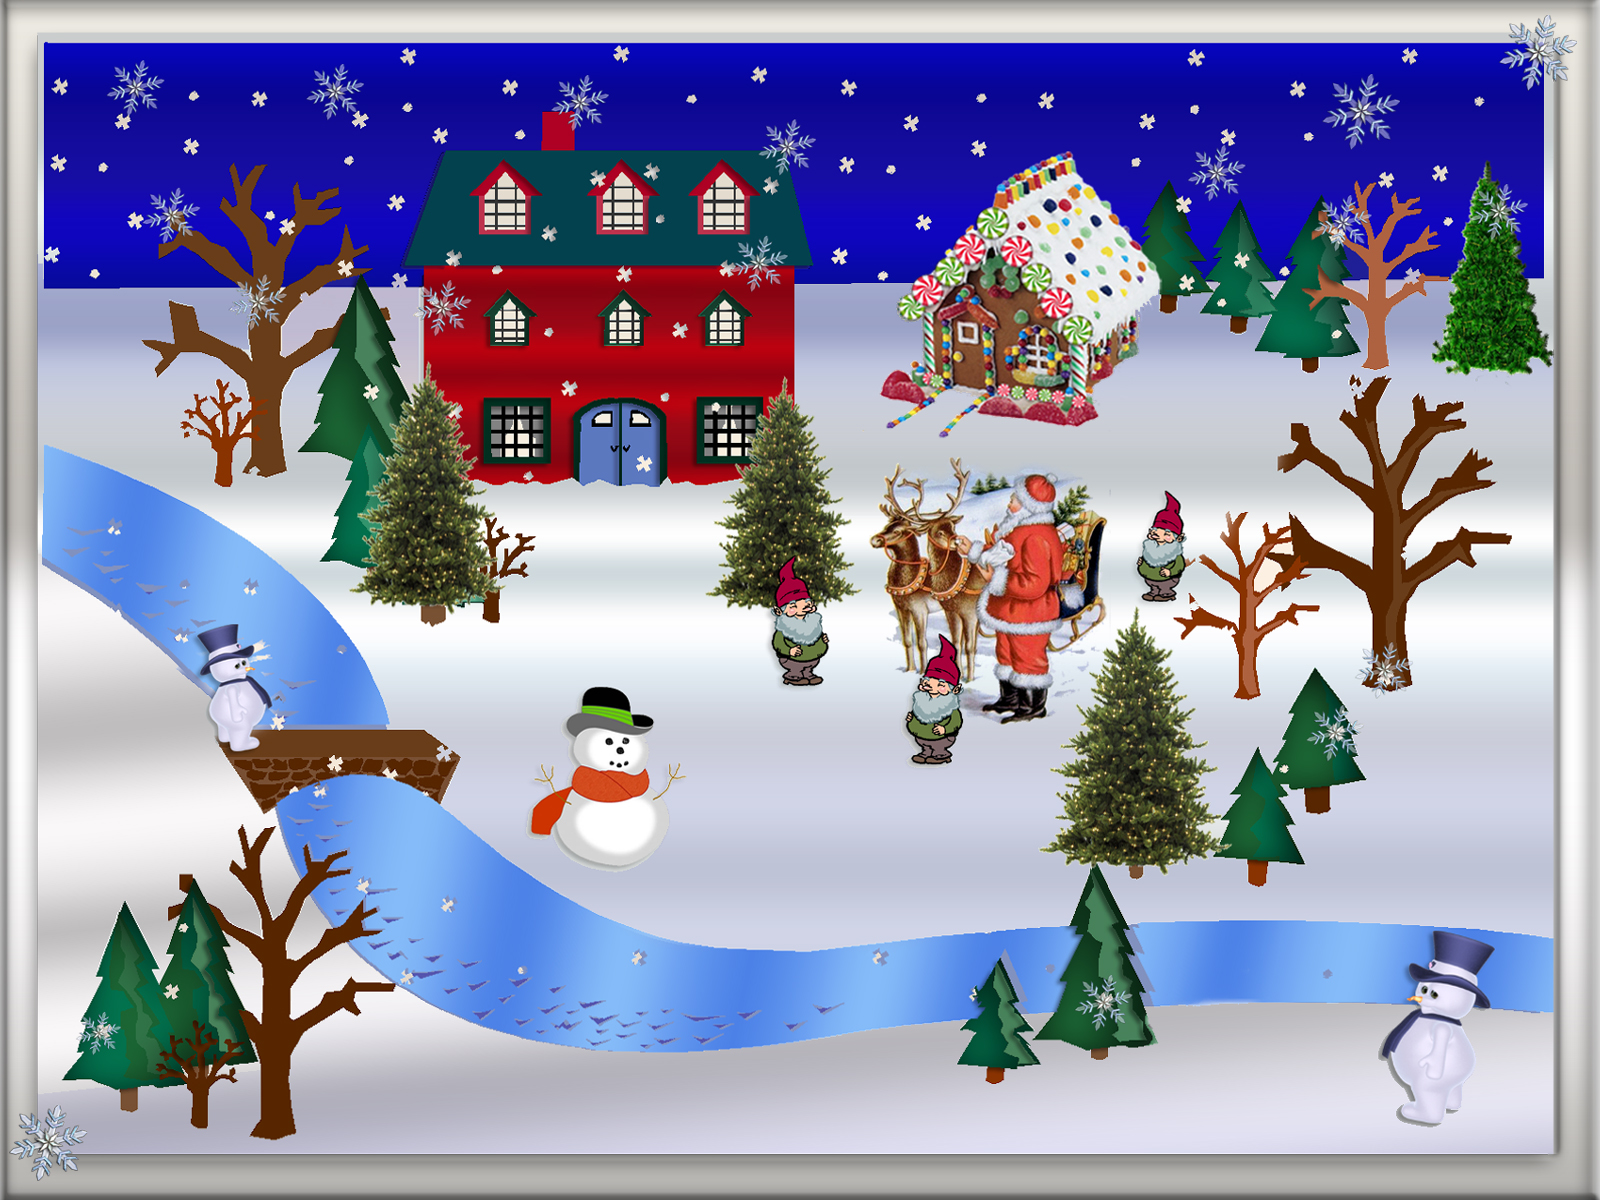 Christmas winter scene clipart - Clipart-Christmas winter scene clipart - ClipartFest-9